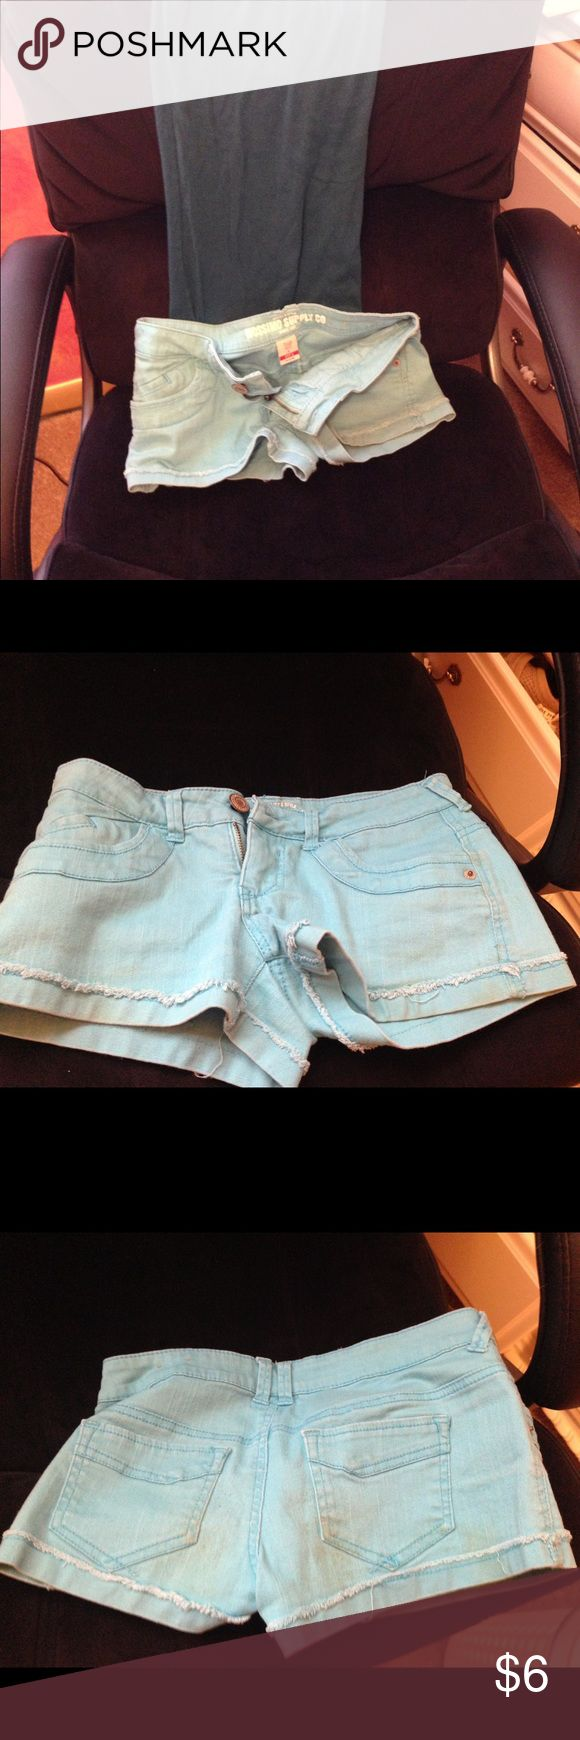 Mossimos Light blue shorts 5 pocket shorts with button in a washed out blue green color. zipper hemmed cuff with unfinished look Ask me and I will create a bundle of 4 shorts for $14. Offer only available for shorts Mossimo Supply Co Shorts Jean Shorts